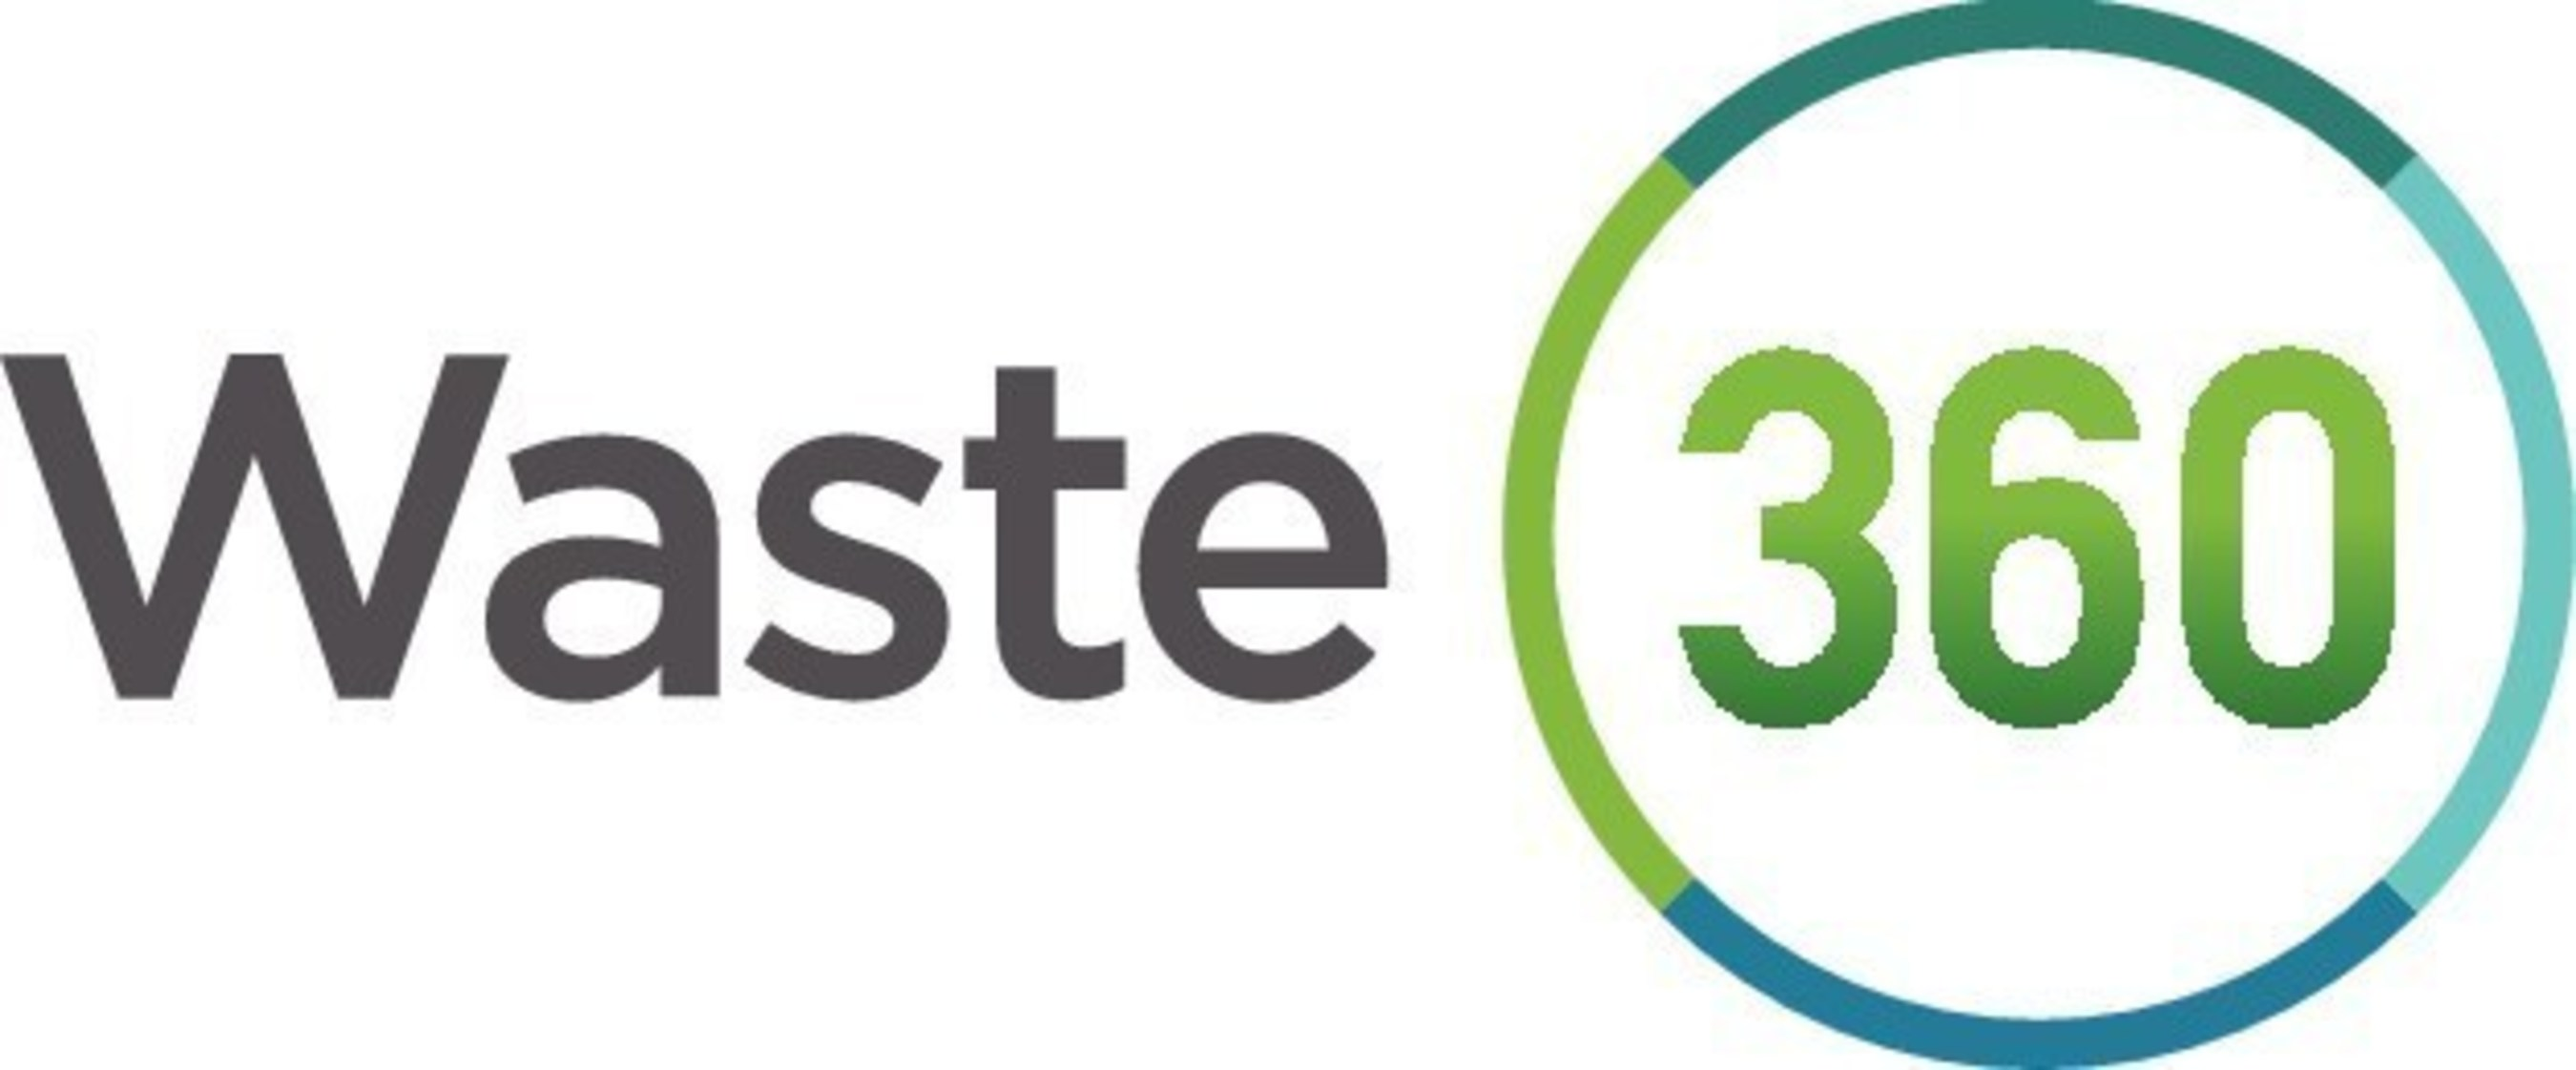 New Award From Penton's Waste360.com will Recognize Rising Stars in Waste, Recycling, and Organics